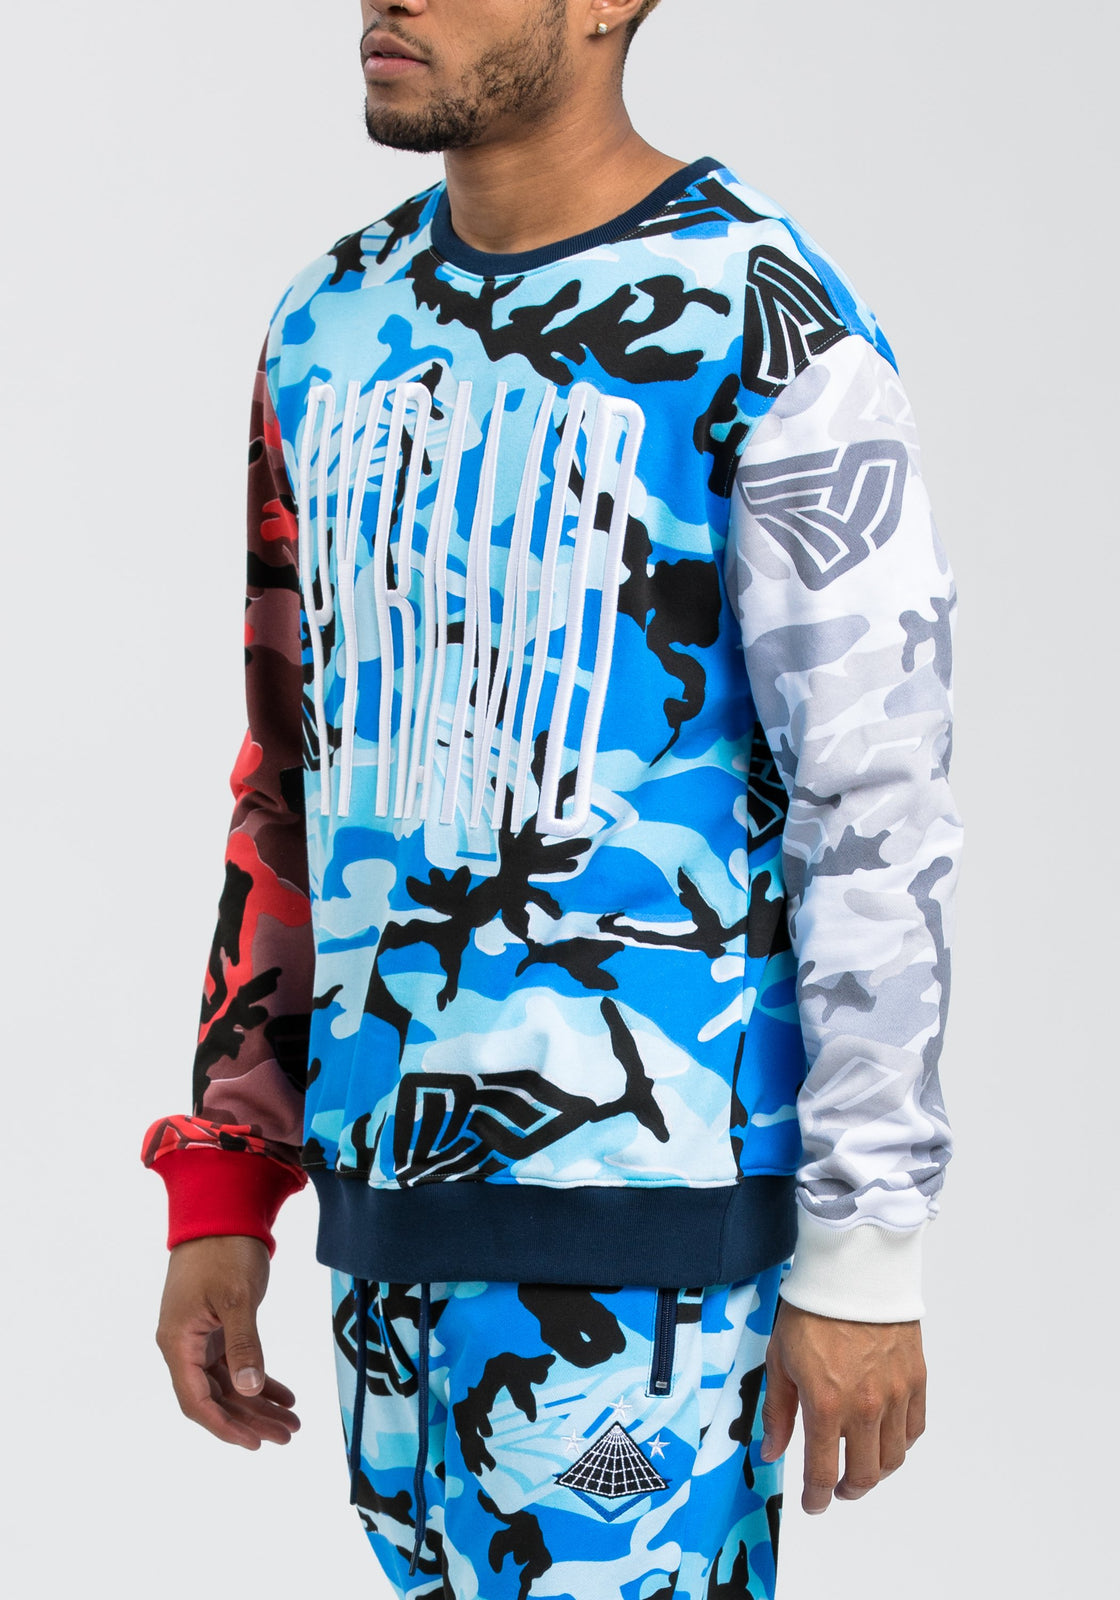 Camo Pyramid Sweatshirt - Color: Multi Color | Multi